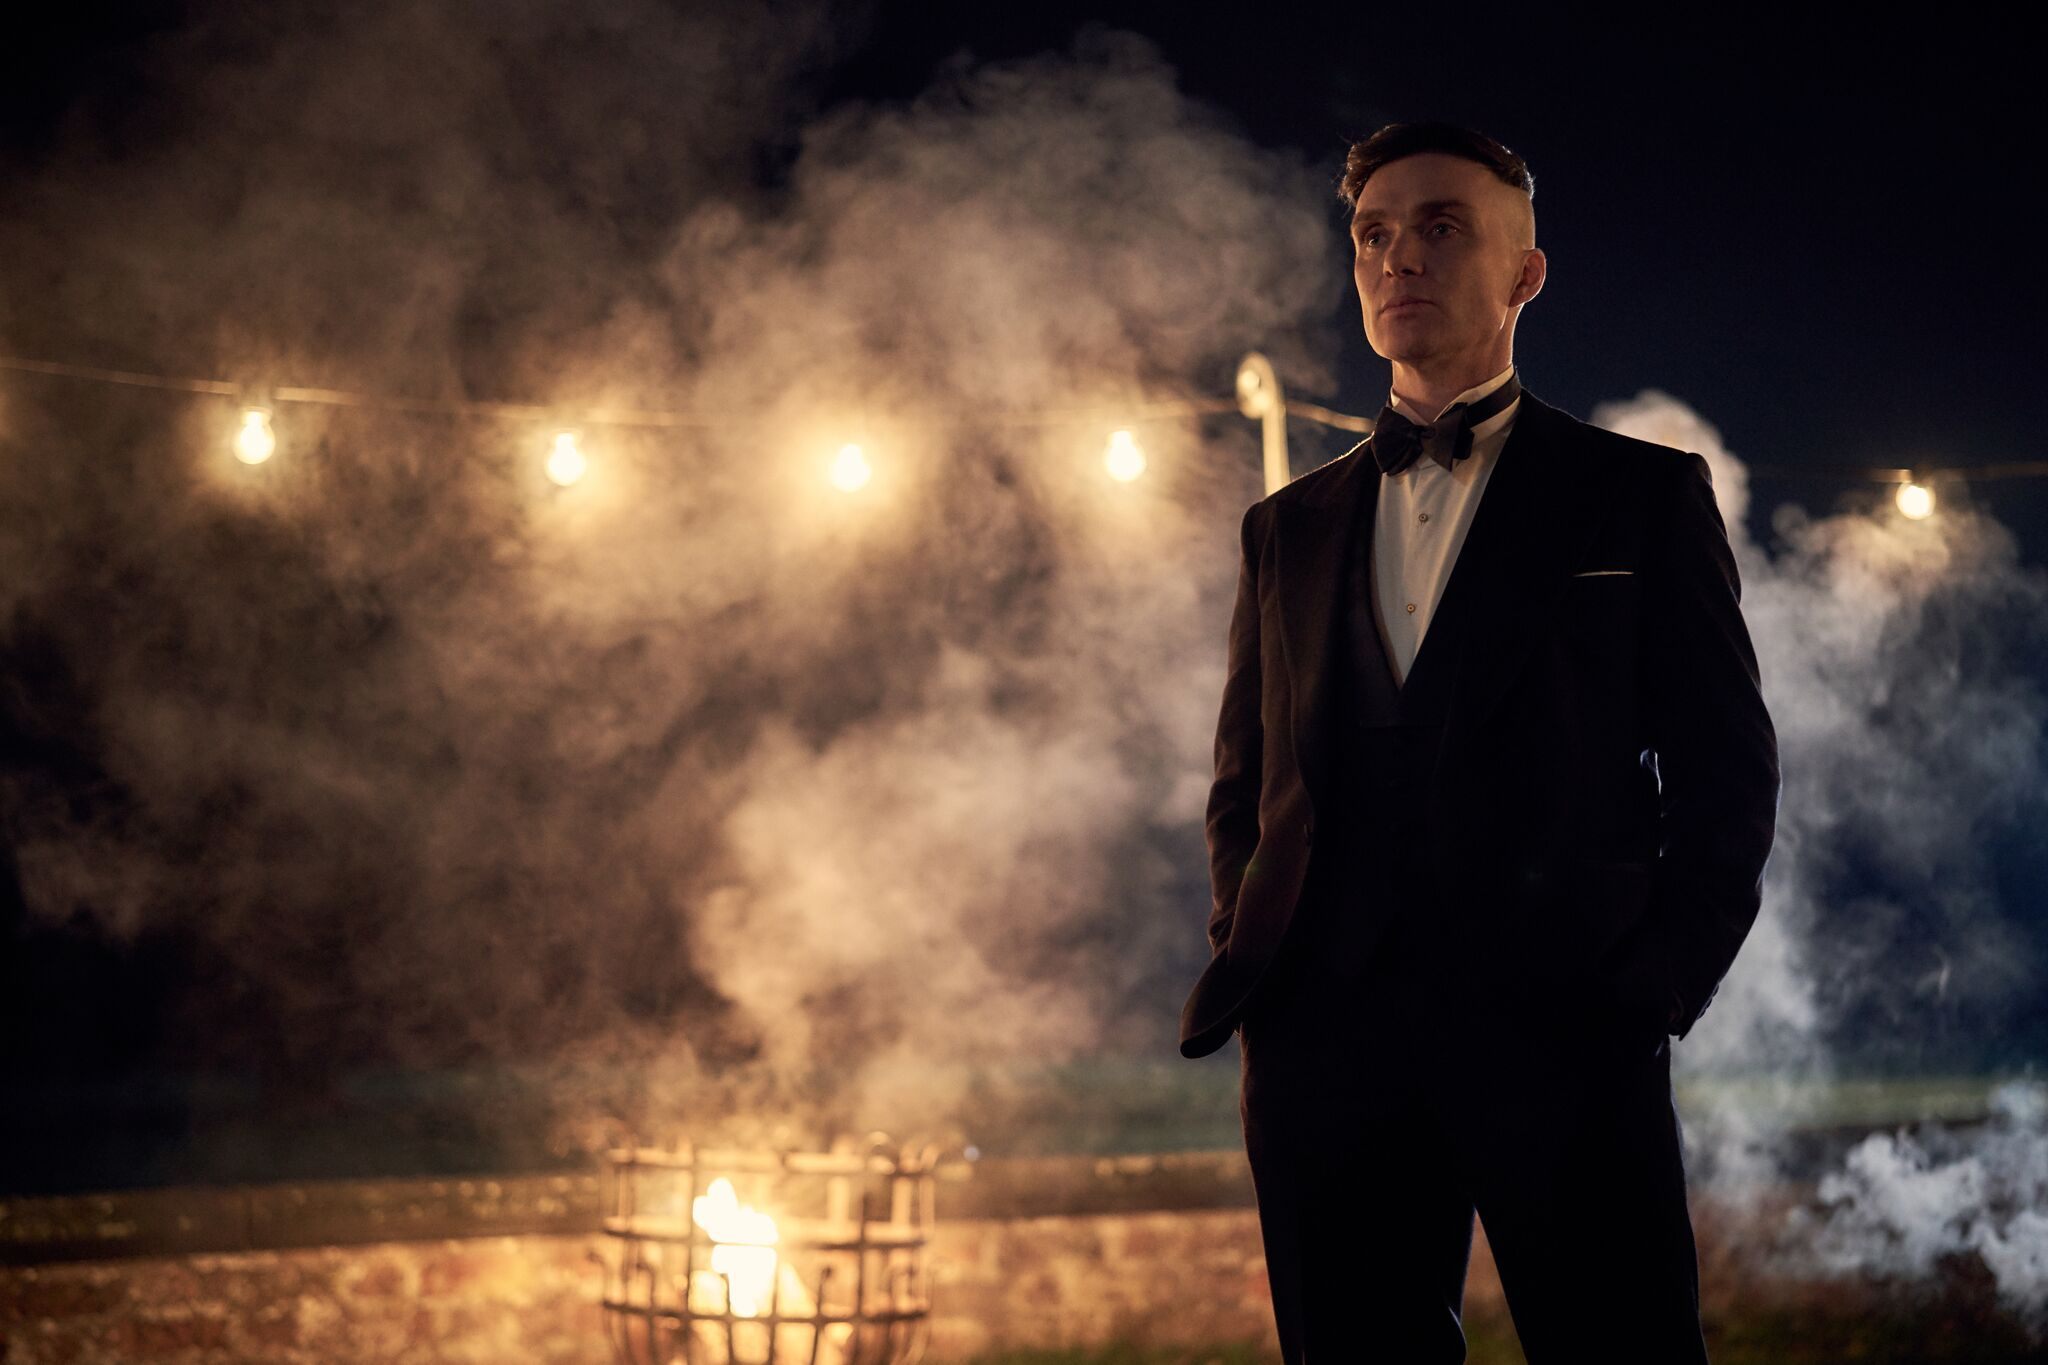 When Is 'Peaky Blinders' Season 6 Out? Rumours, Teasers, And Everything You Need To Know